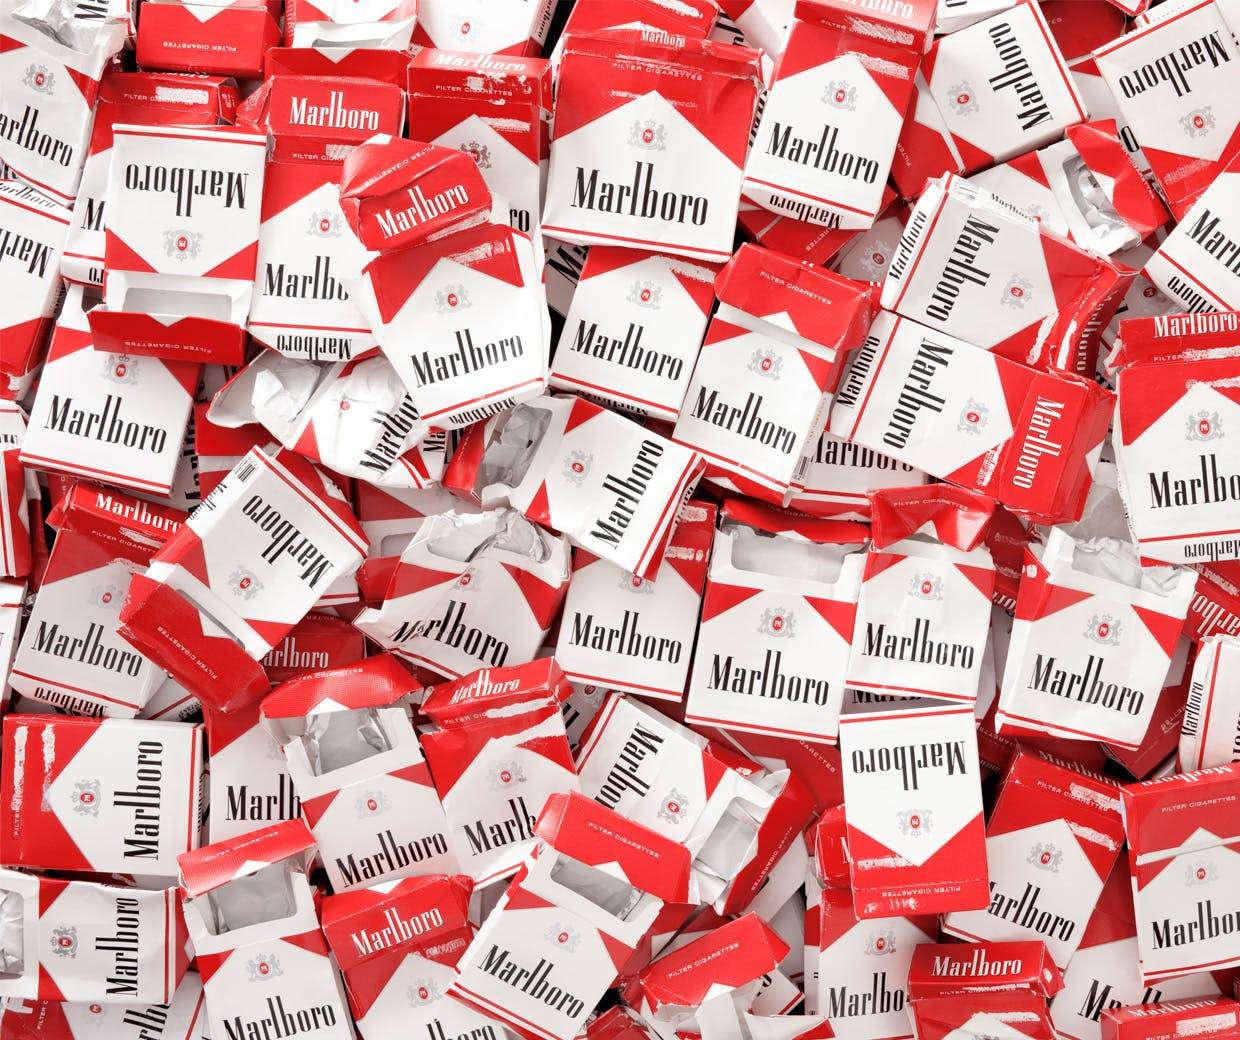 Marlboro offering ex-smokers cheap life insurance leaves a bad taste – Marketing Week